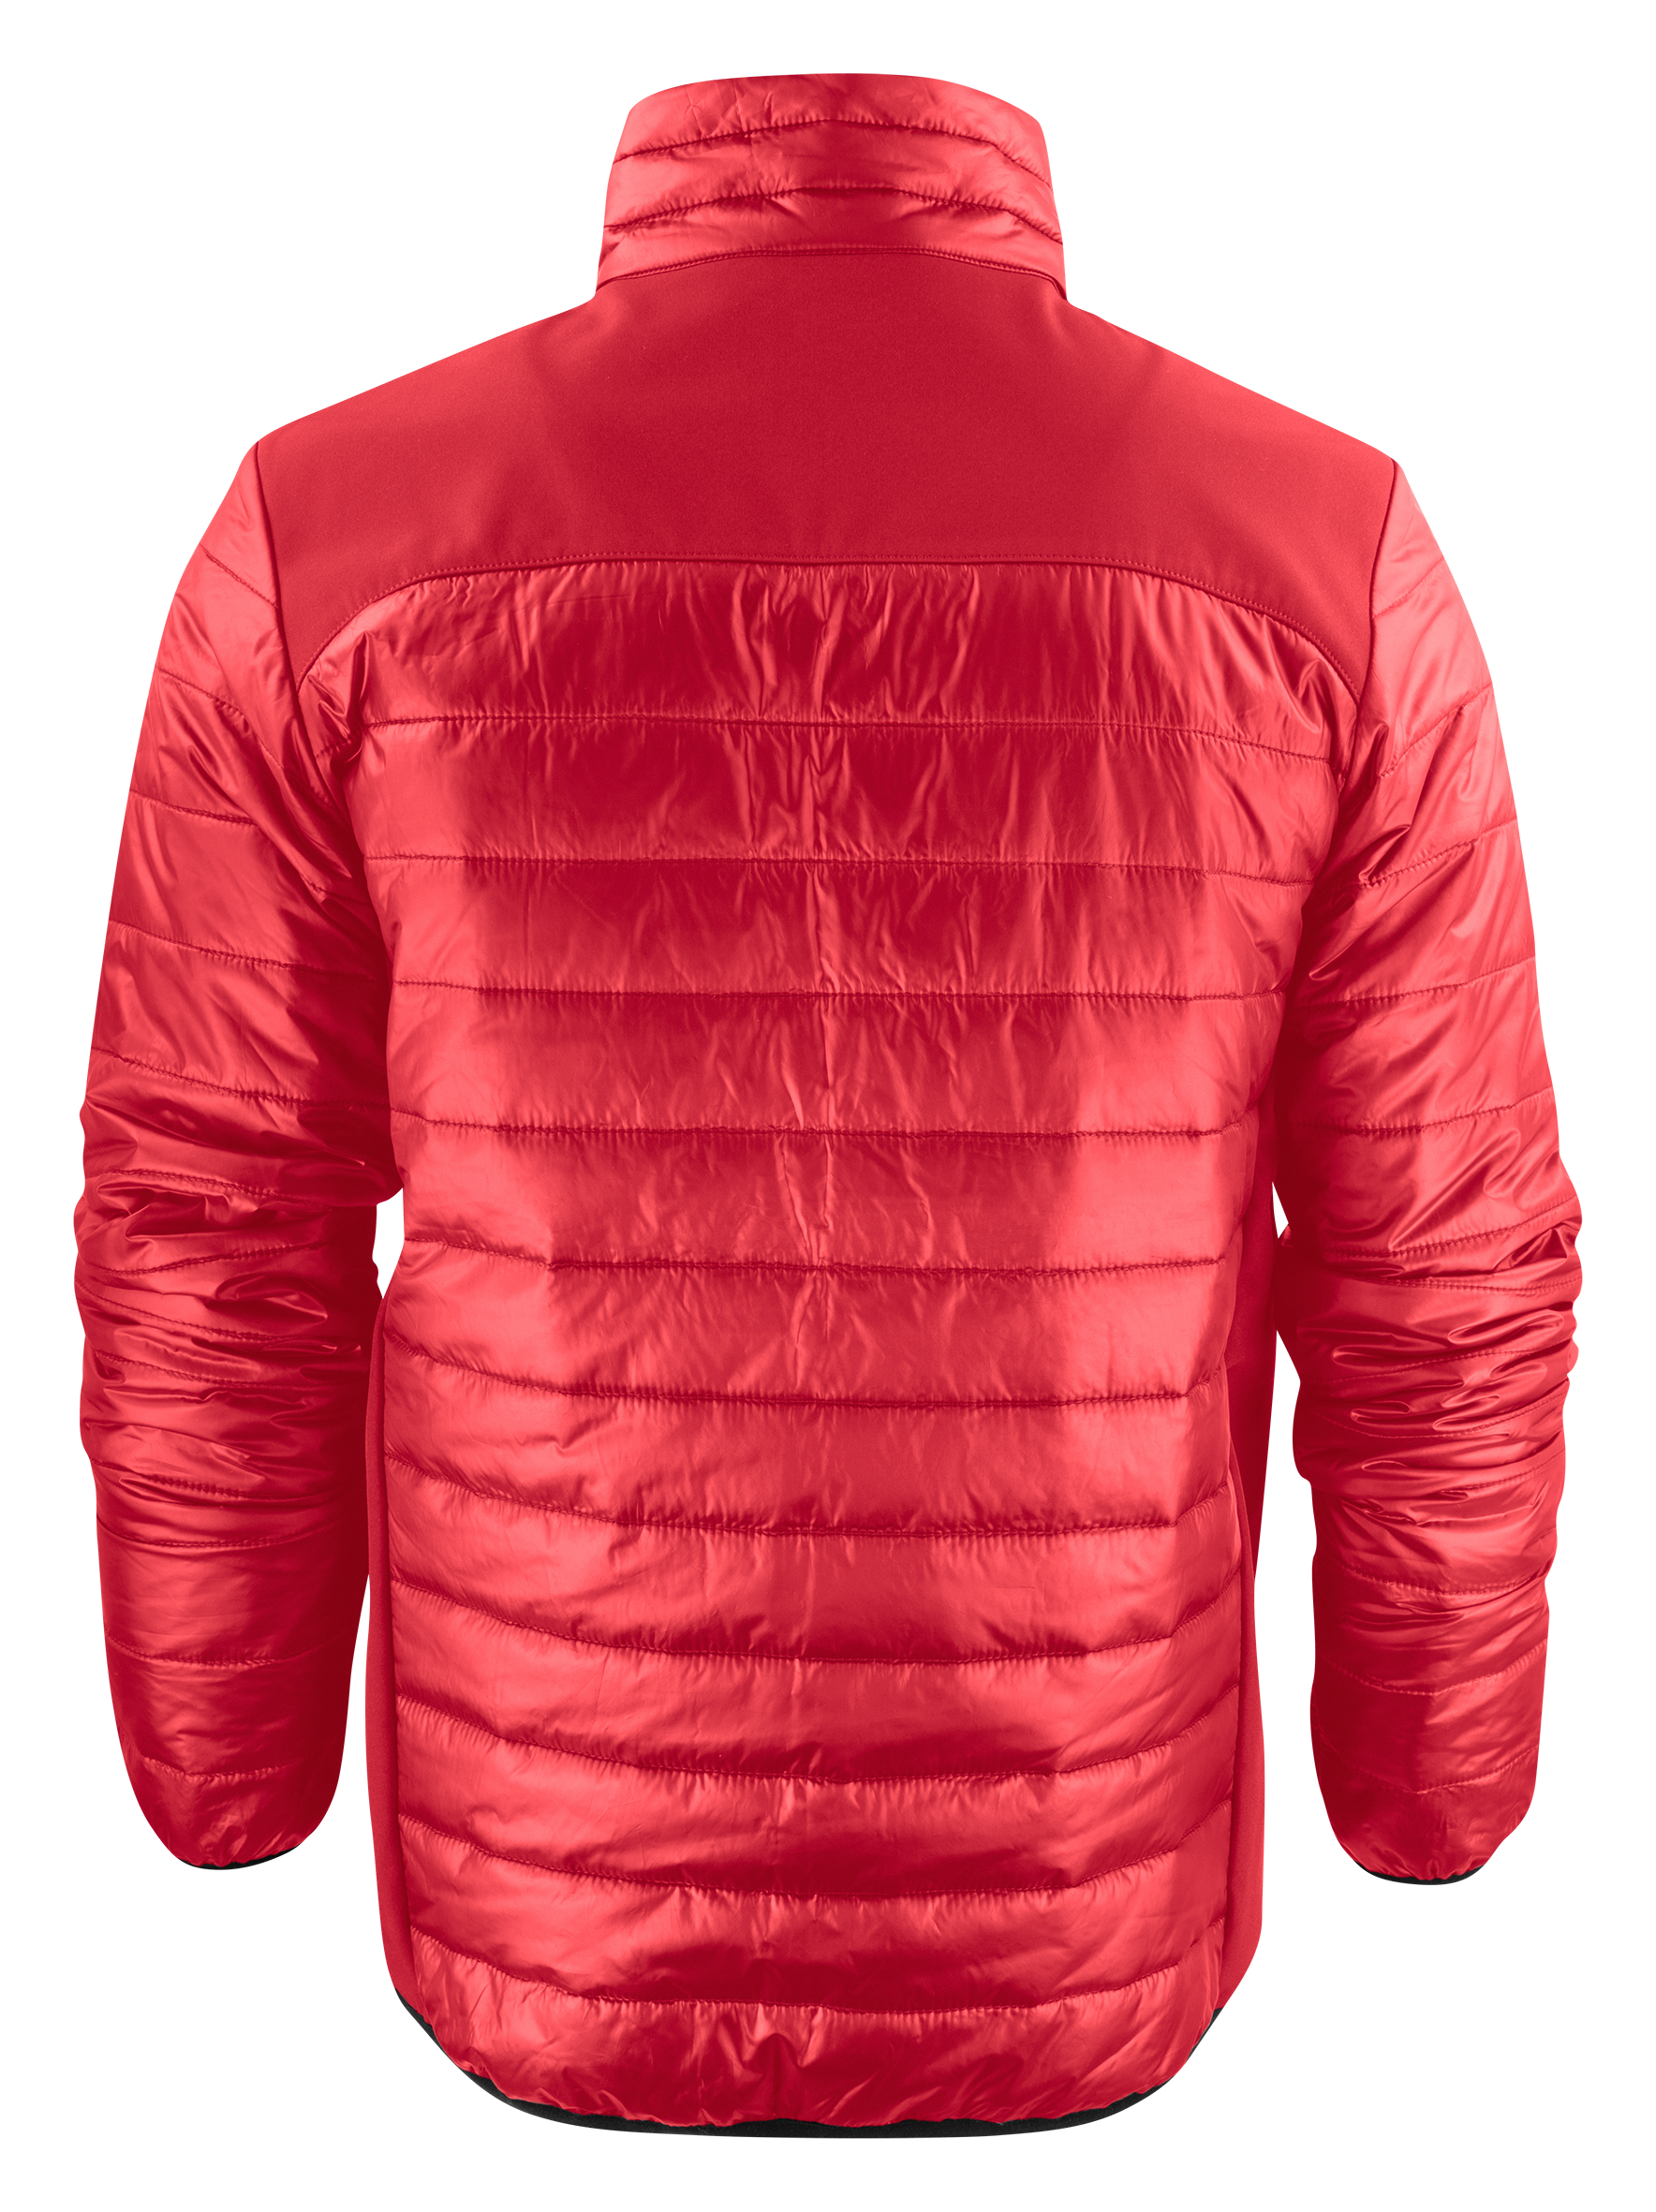 Back View: Unisex Expedition Jacket in Red